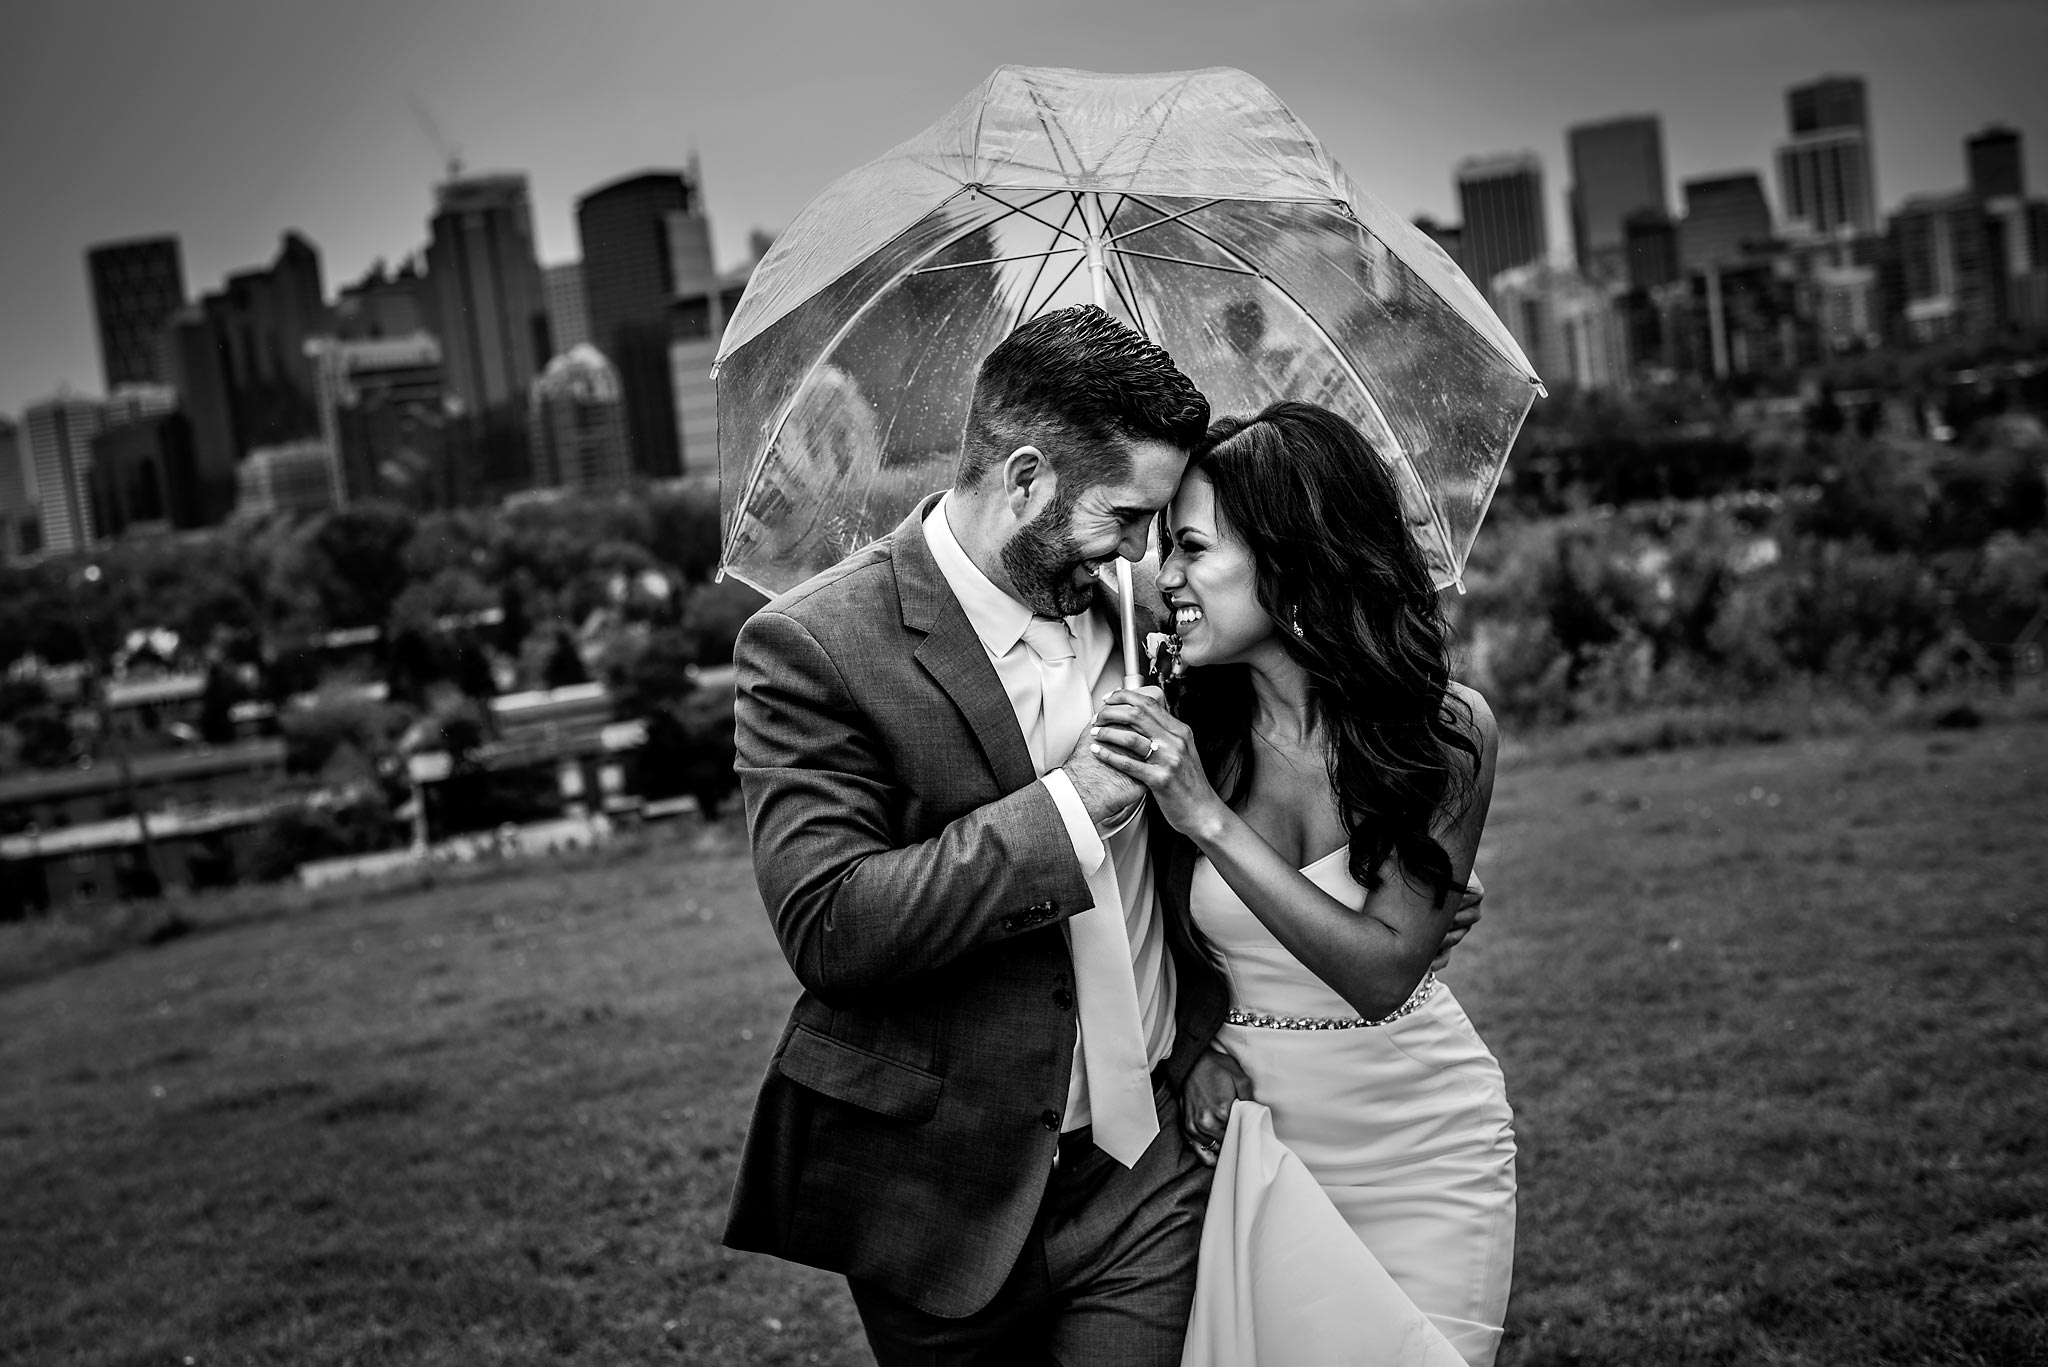 bride and groom walking up a hill together holding an umbrella with the downtown city skyline in the background